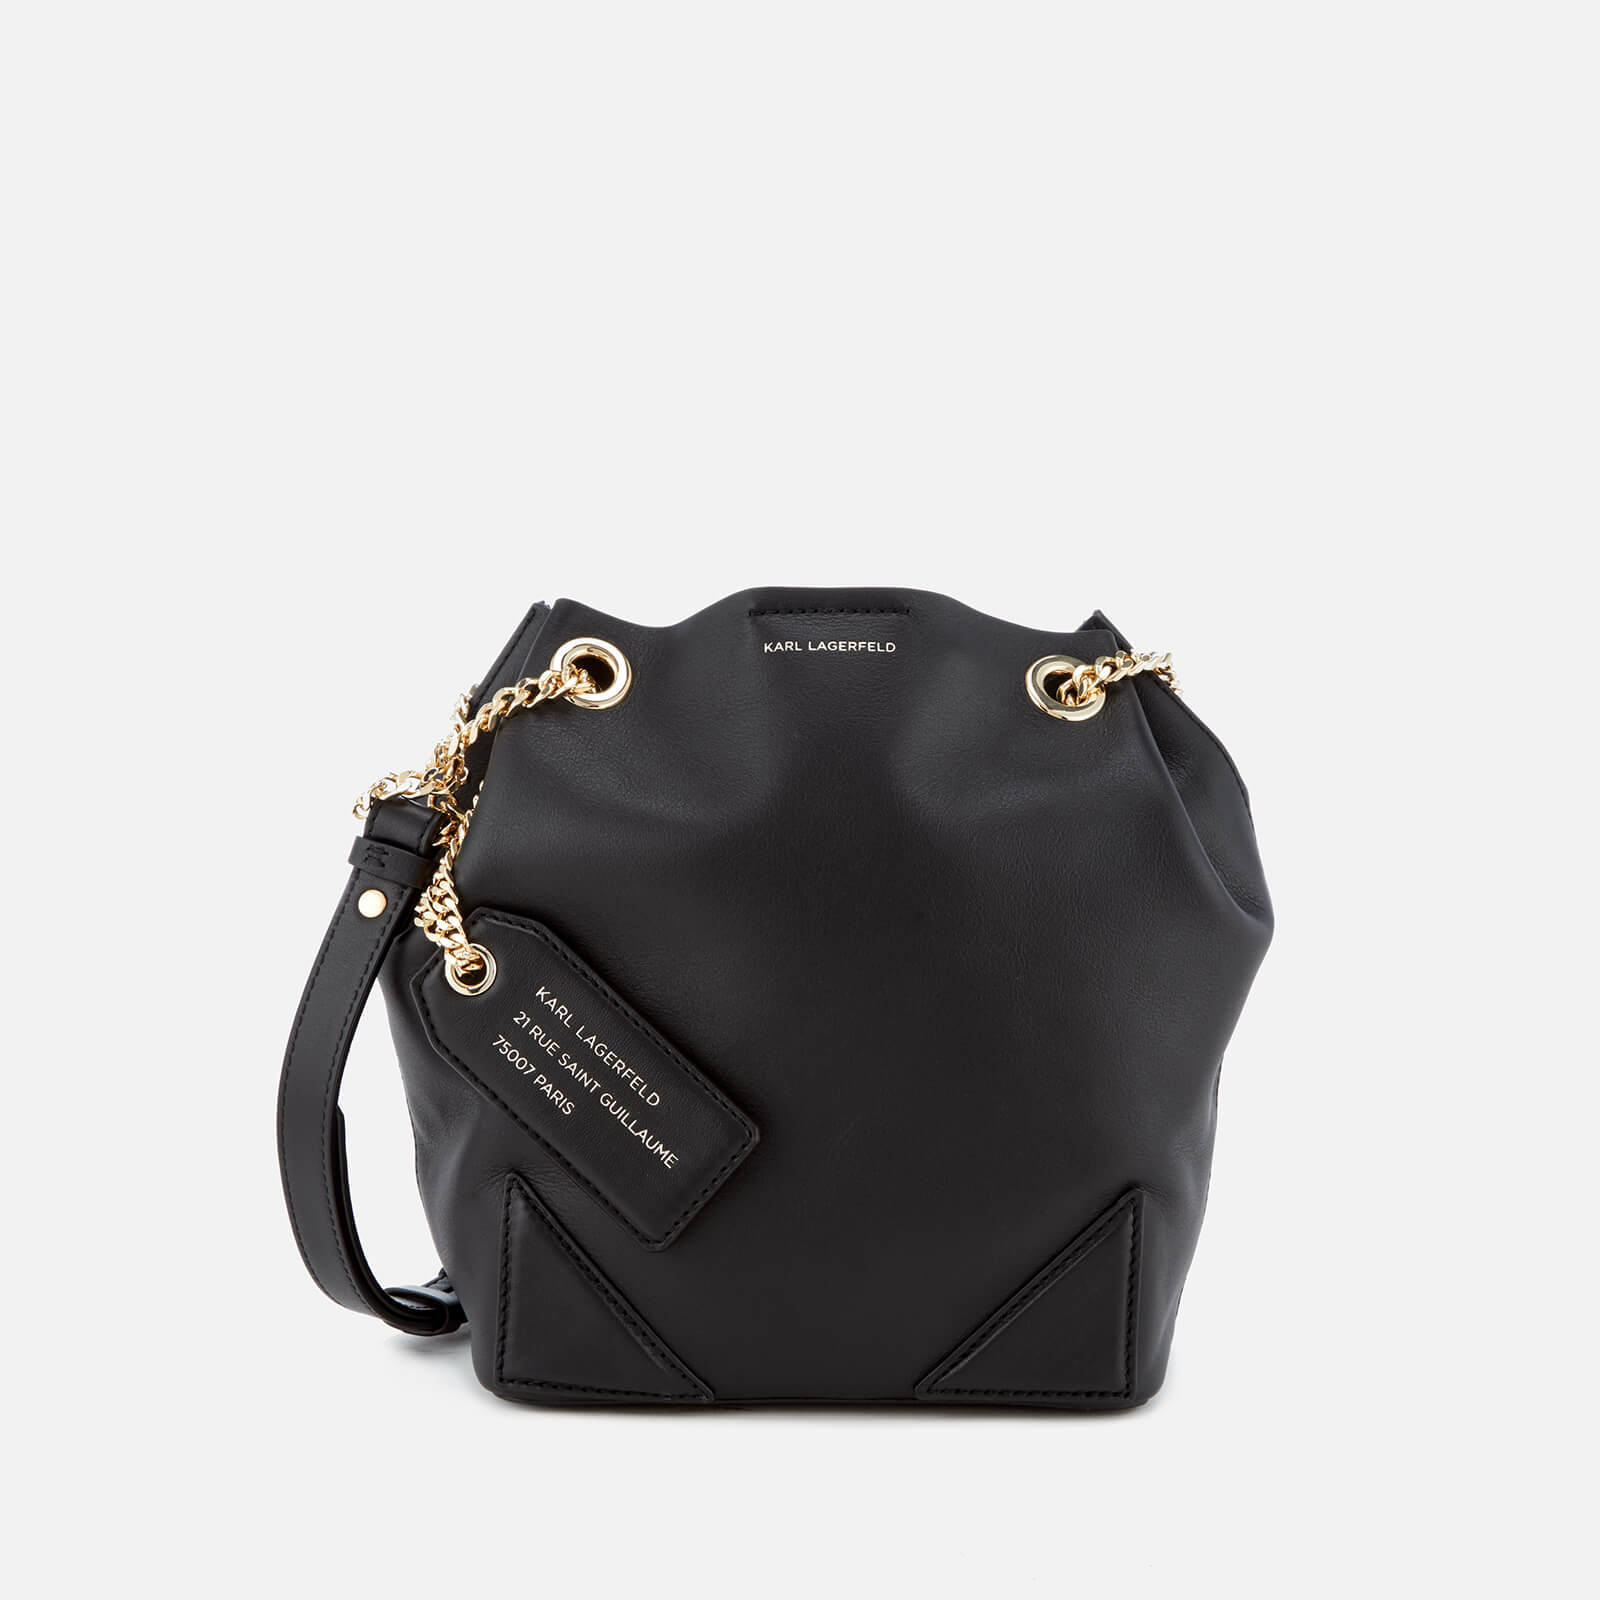 a9c0365128bd Karl Lagerfeld Women s K Slouchy Small Drawstring Bag - Black - Free UK  Delivery over £50